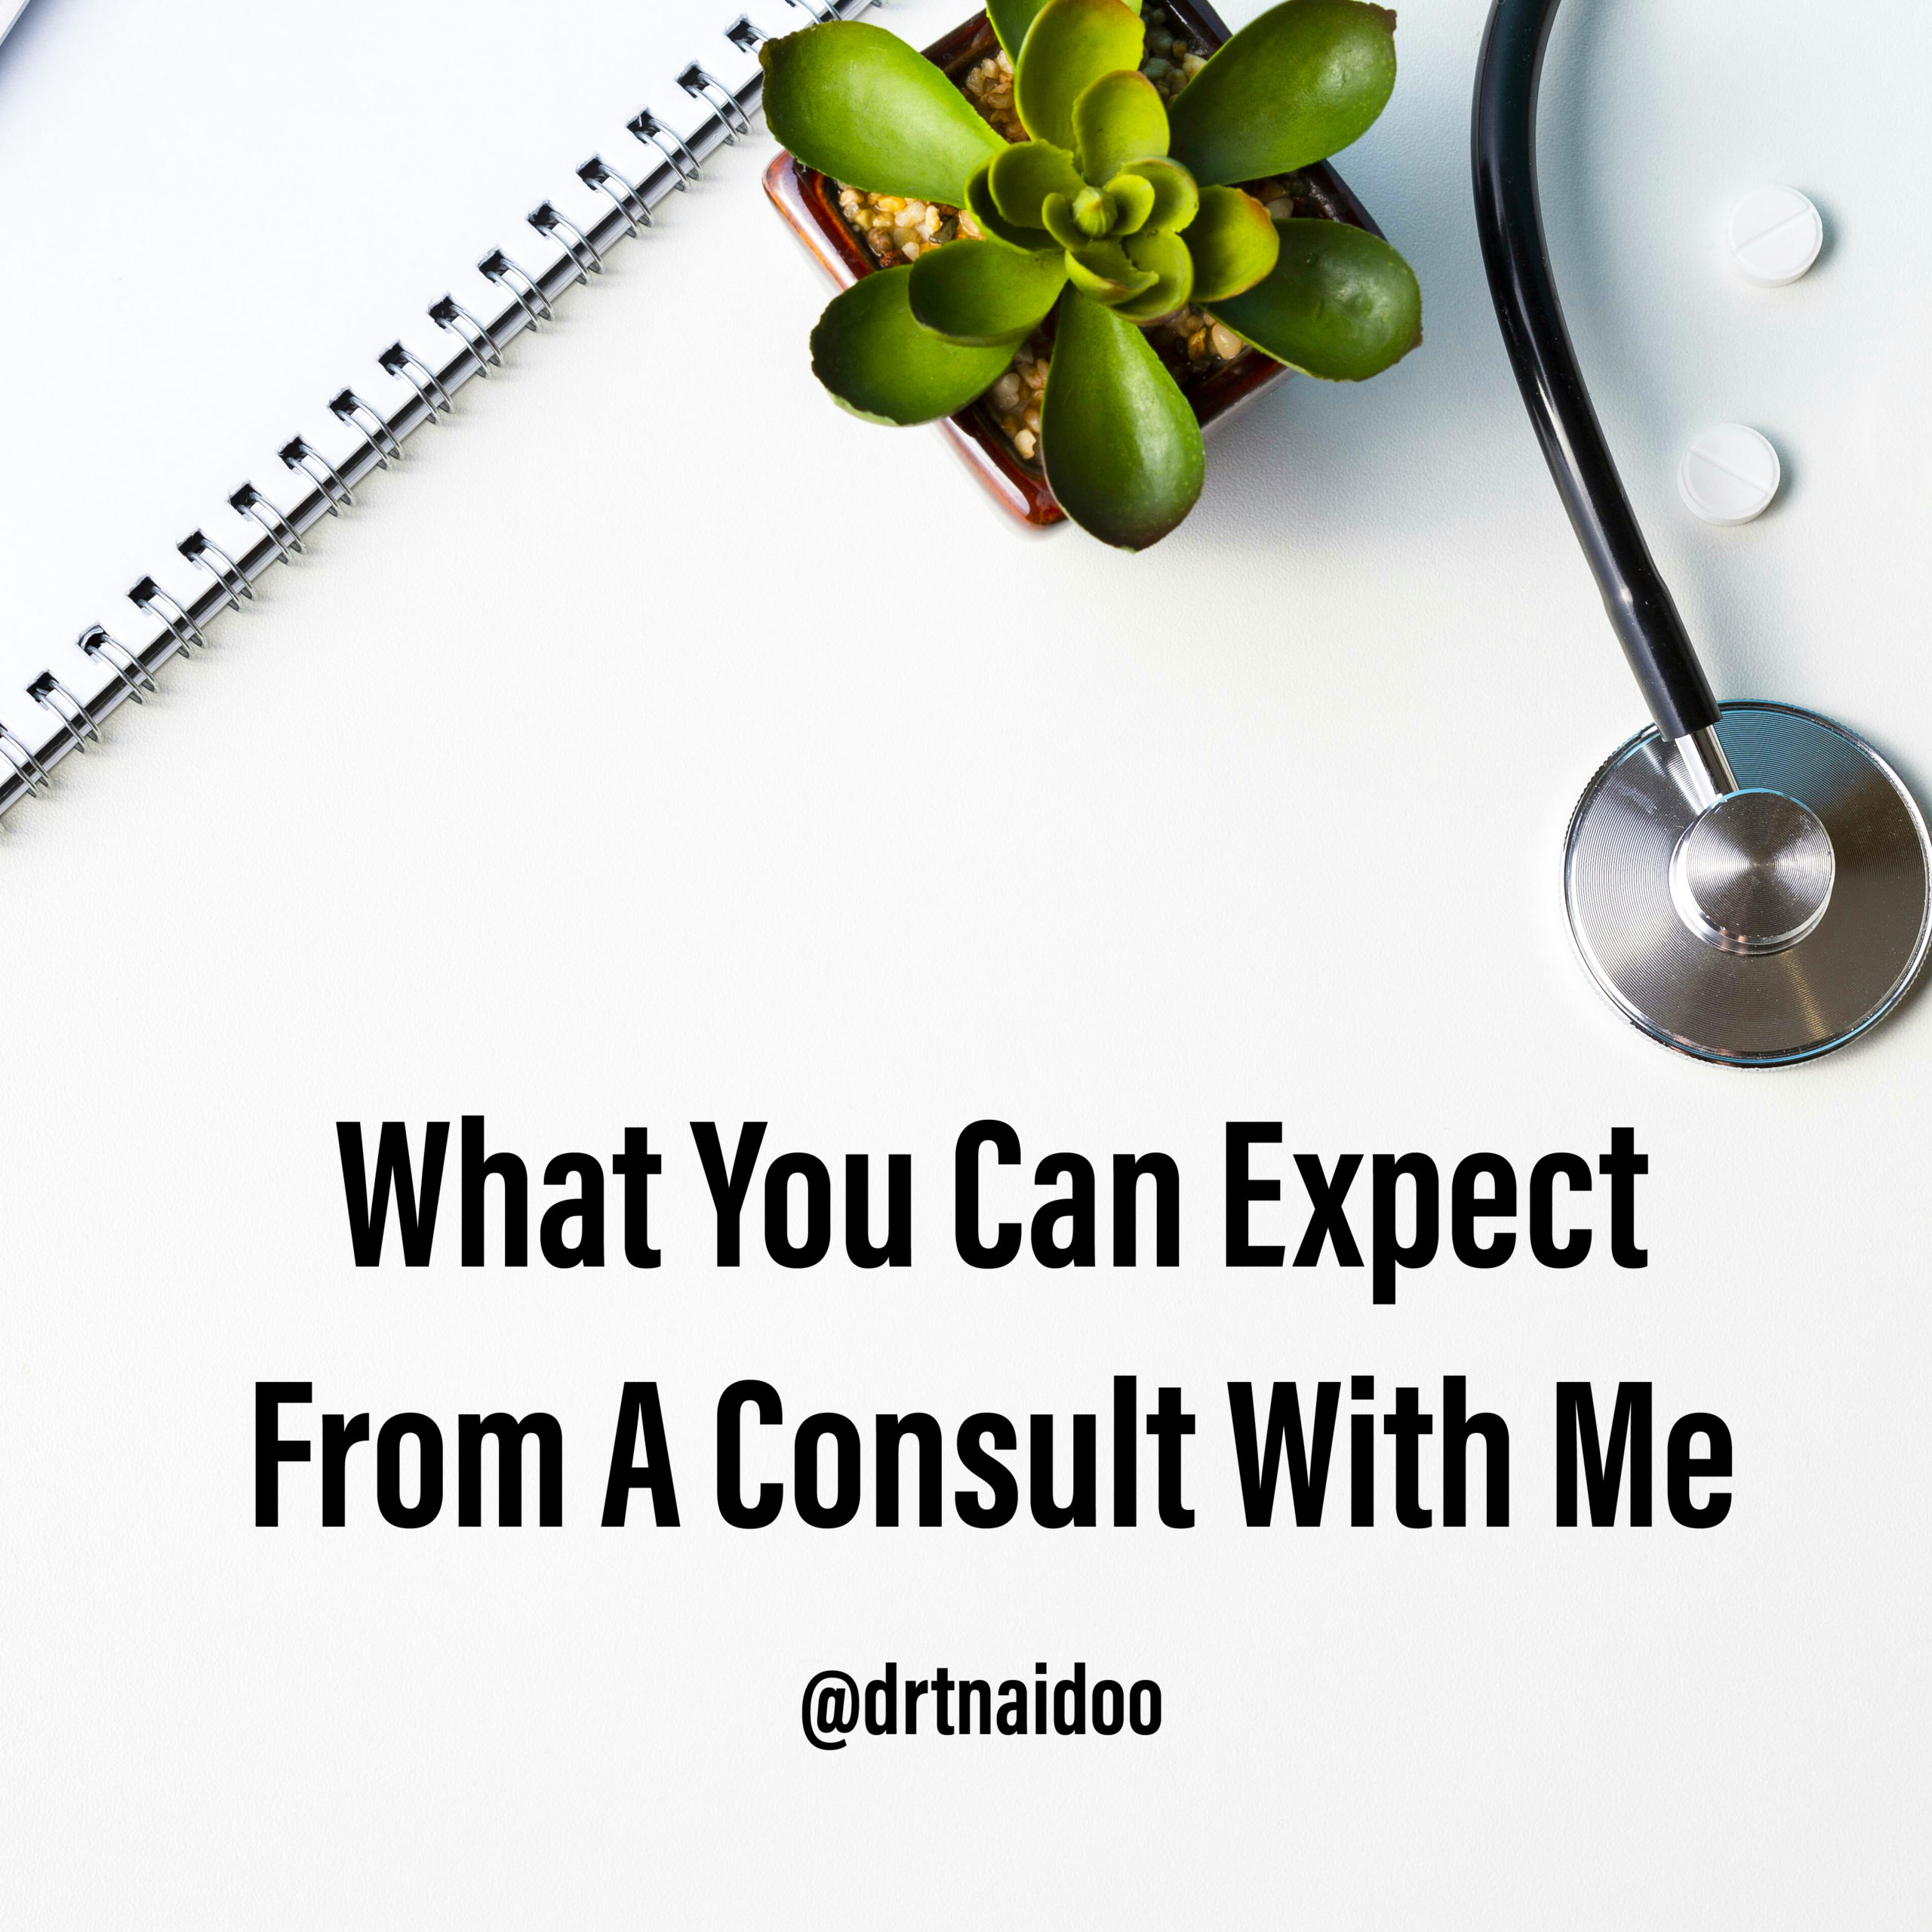 what you can expect from a consult with me